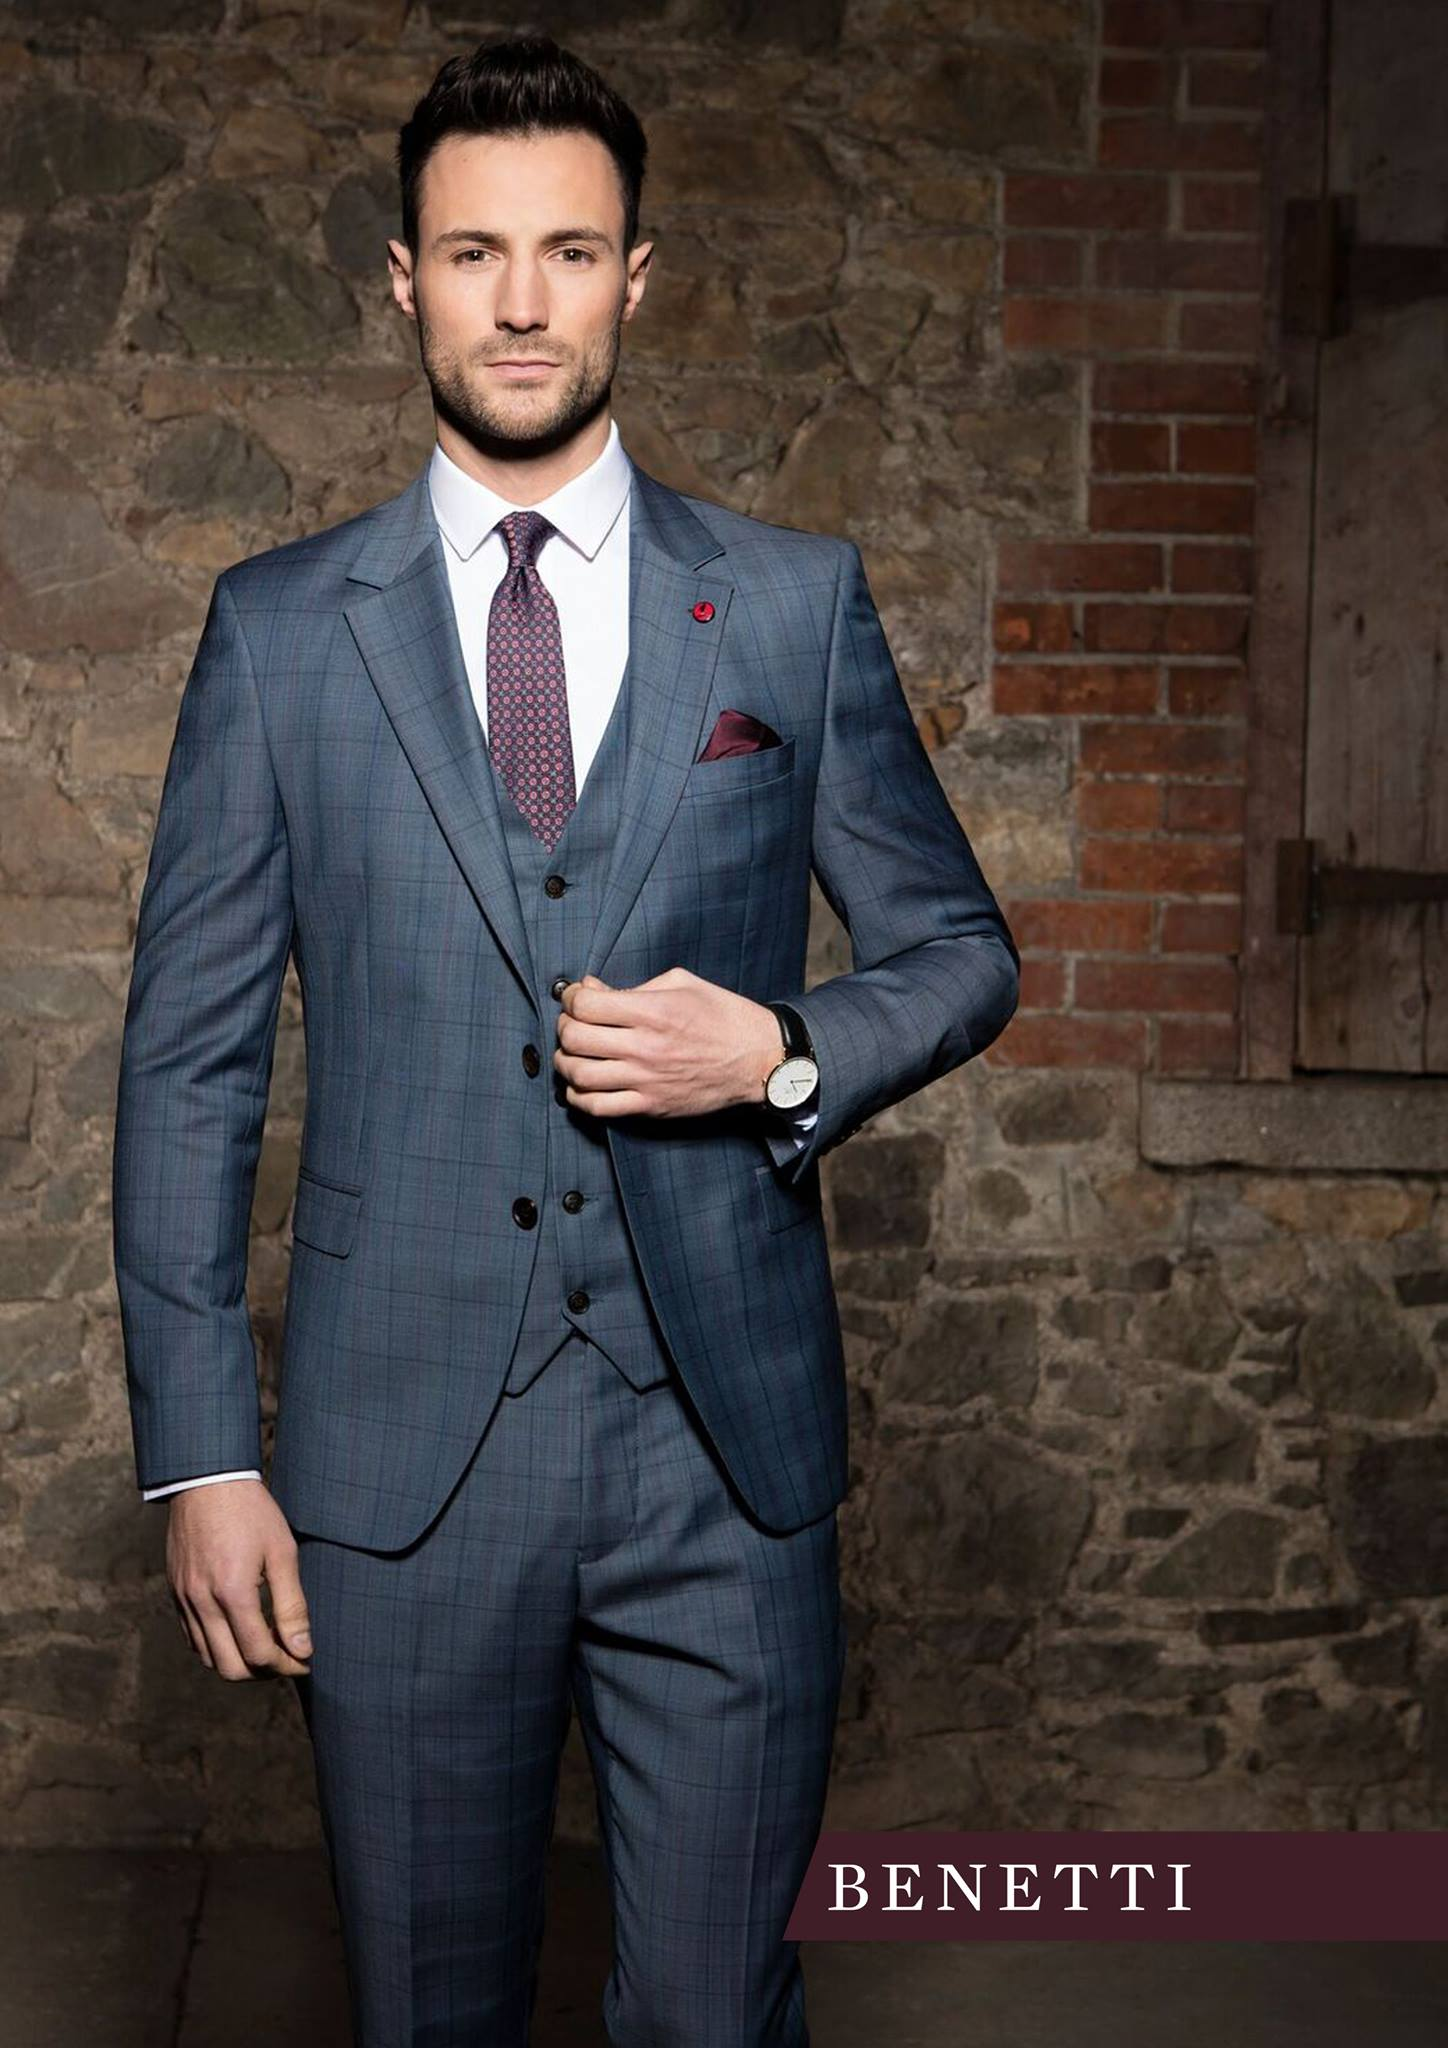 Benetti Bonn 3 Piece Suit - Ice Blue - jjdonnelly